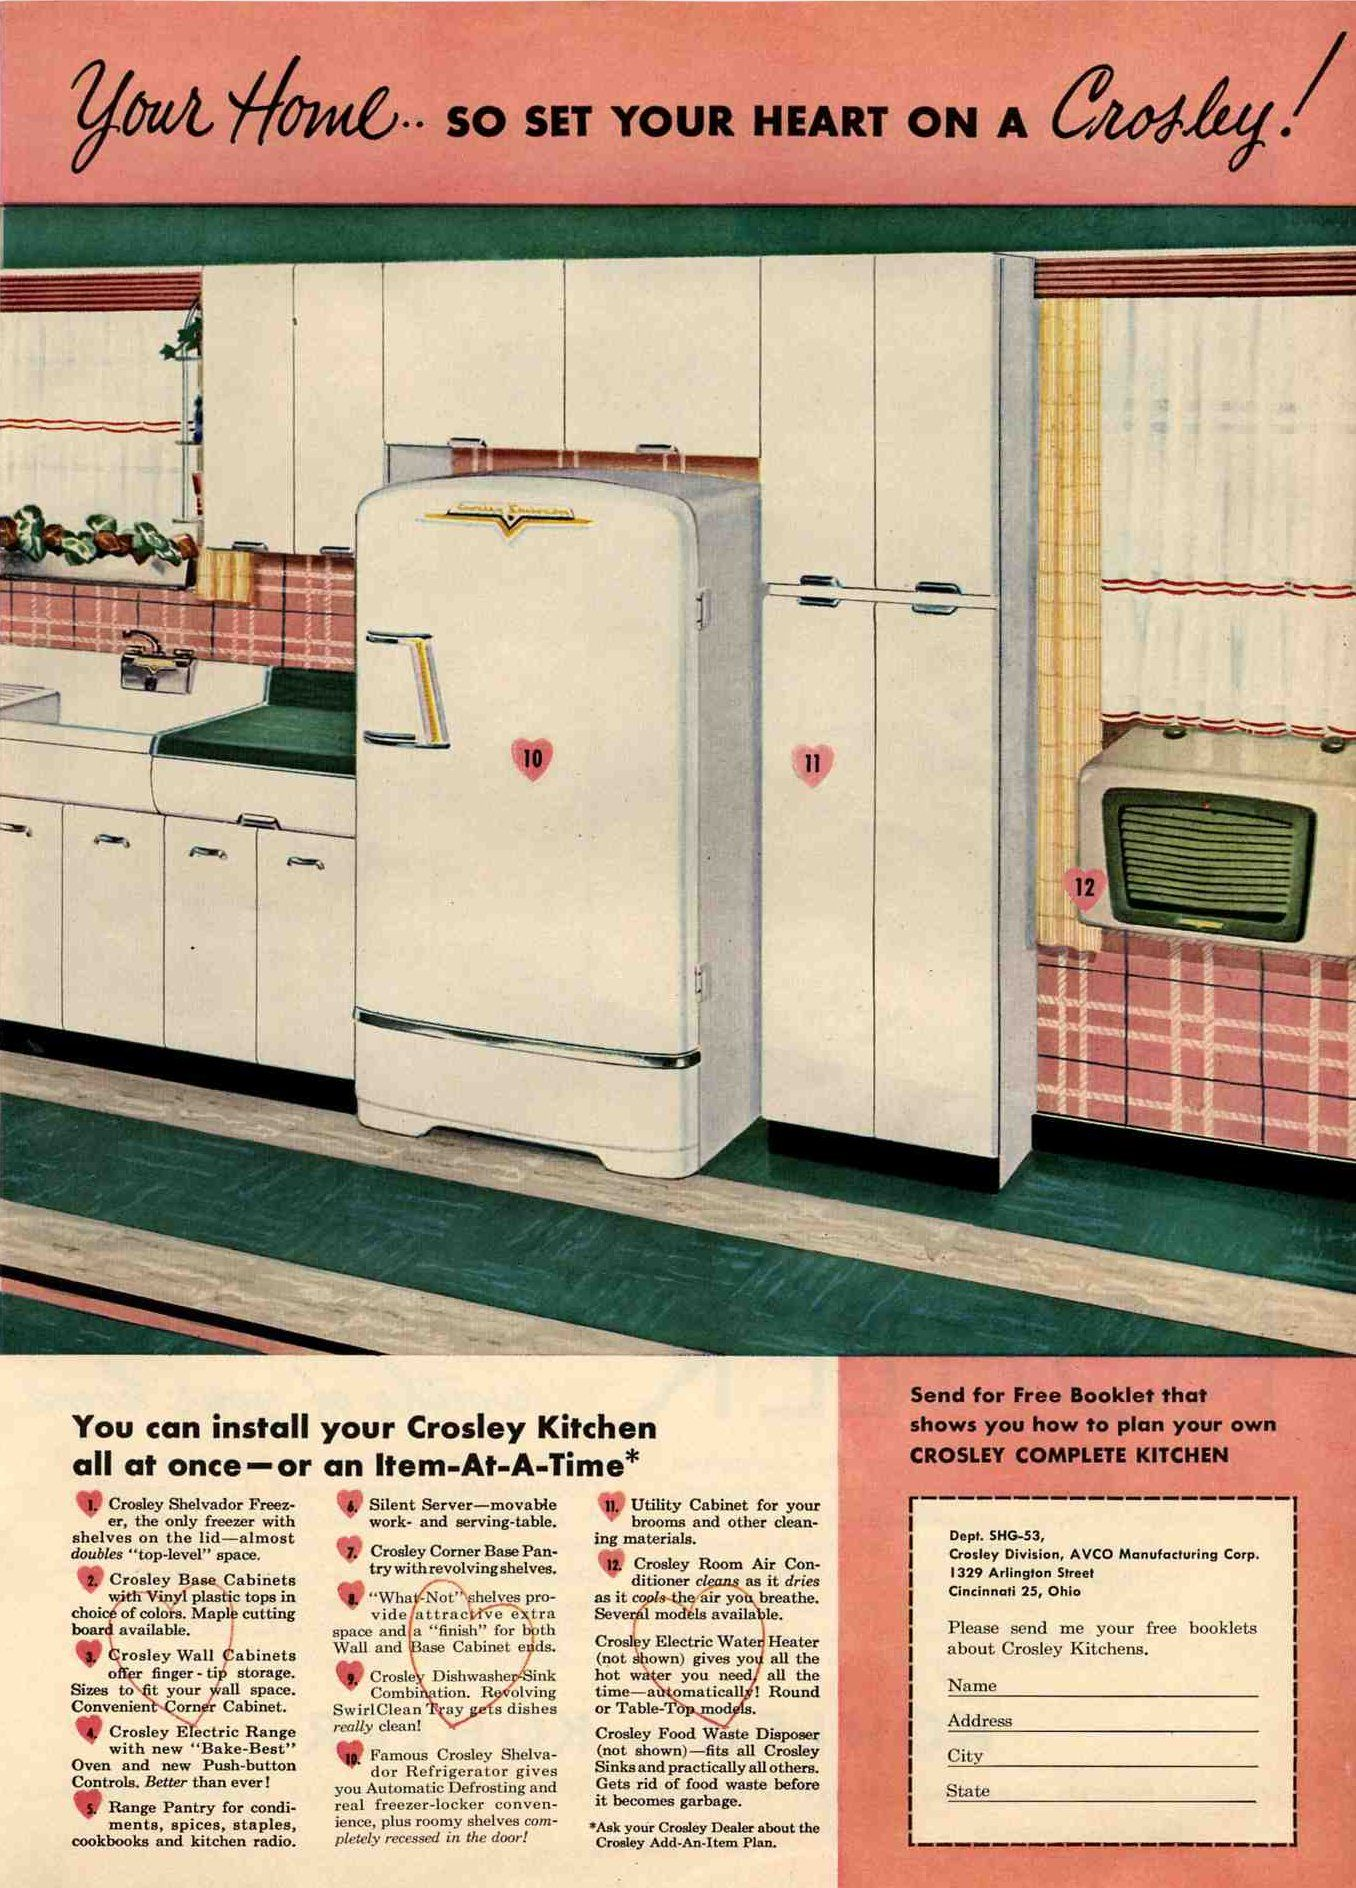 White Aluminum Kitchen Cabinets For Her Vintage 1953 Crosley Cabinets Inst Aluminum Kitchen Cabinets Clean Kitchen Cabinets Modern Kitchen Cabinet Design